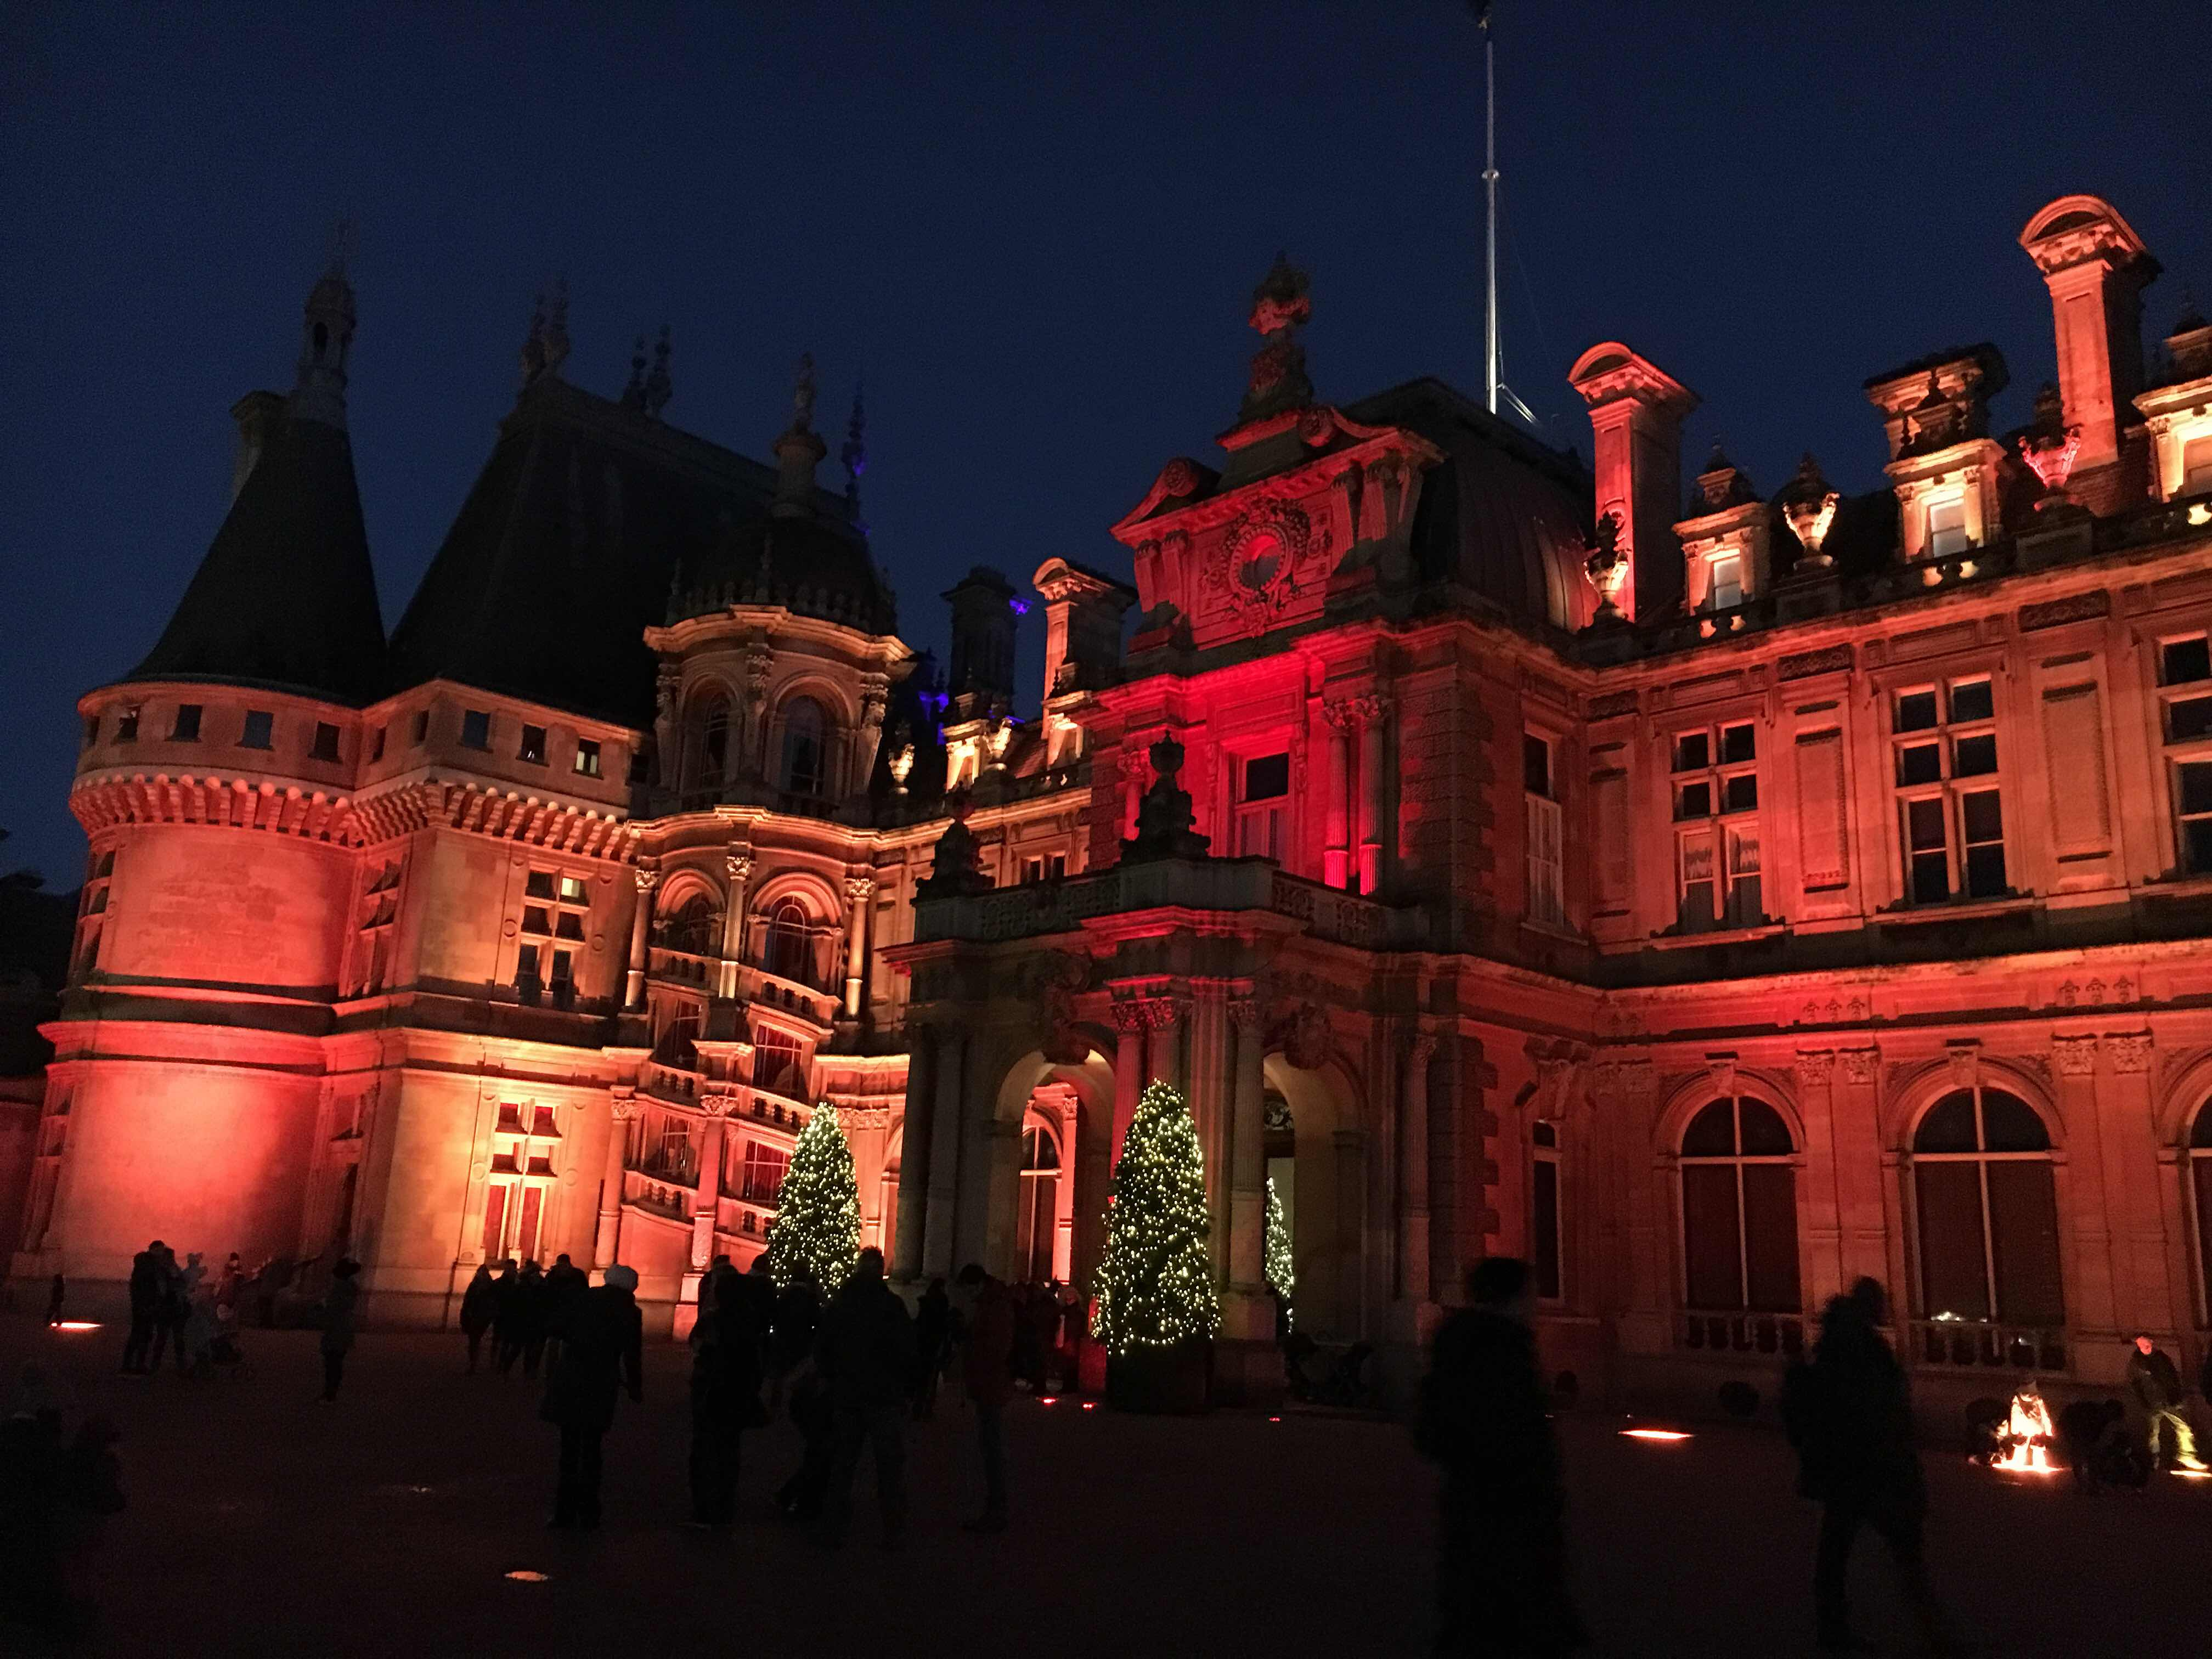 Waddesdon Manor bathed in colour